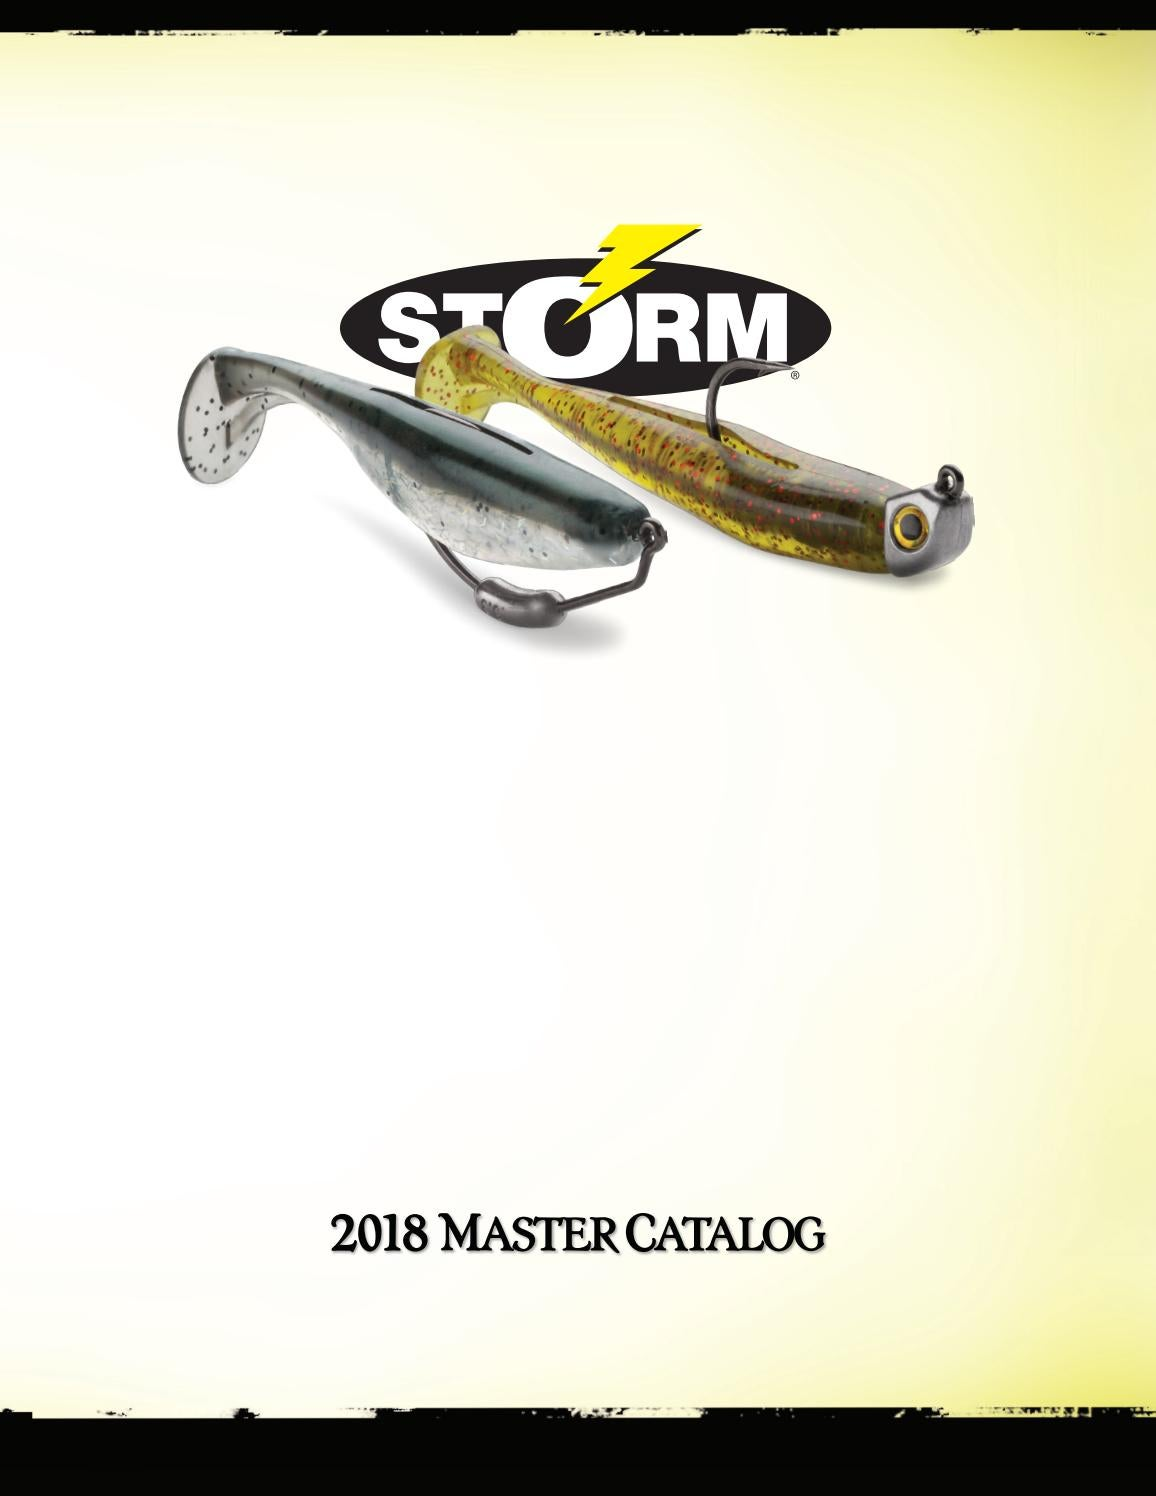 Storm Wildeye Live Redear Fishing Lures 3-Pack